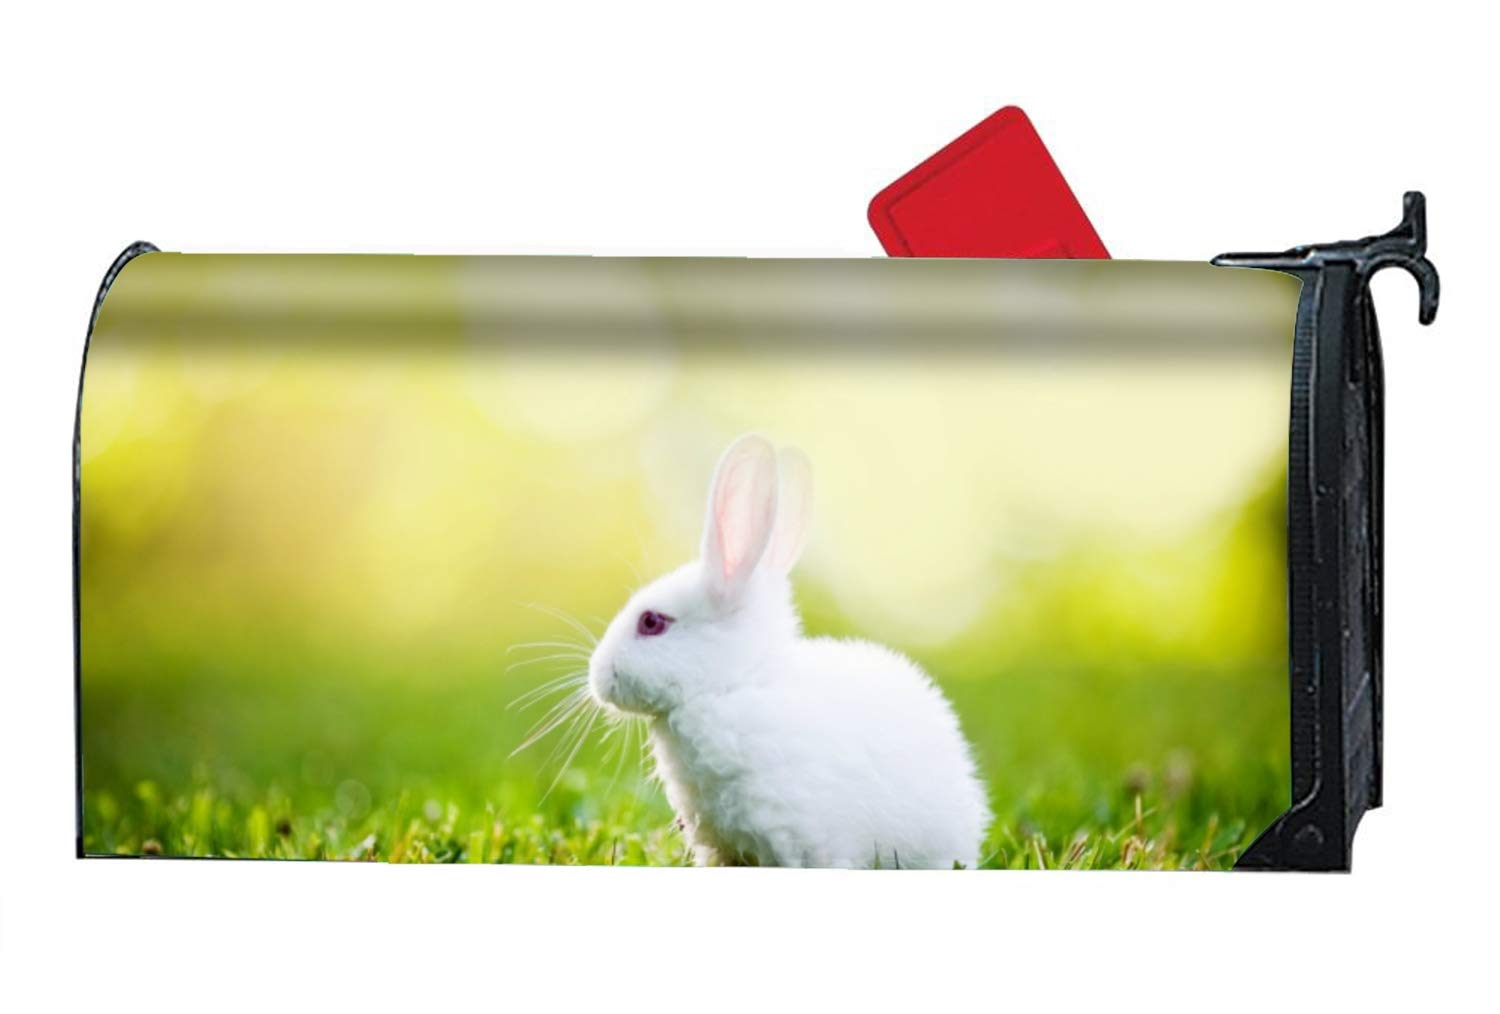 FunnyLife Mailbox Cover - White Rabbit Magnetic Mail Box Cover - Cylinder Packaged